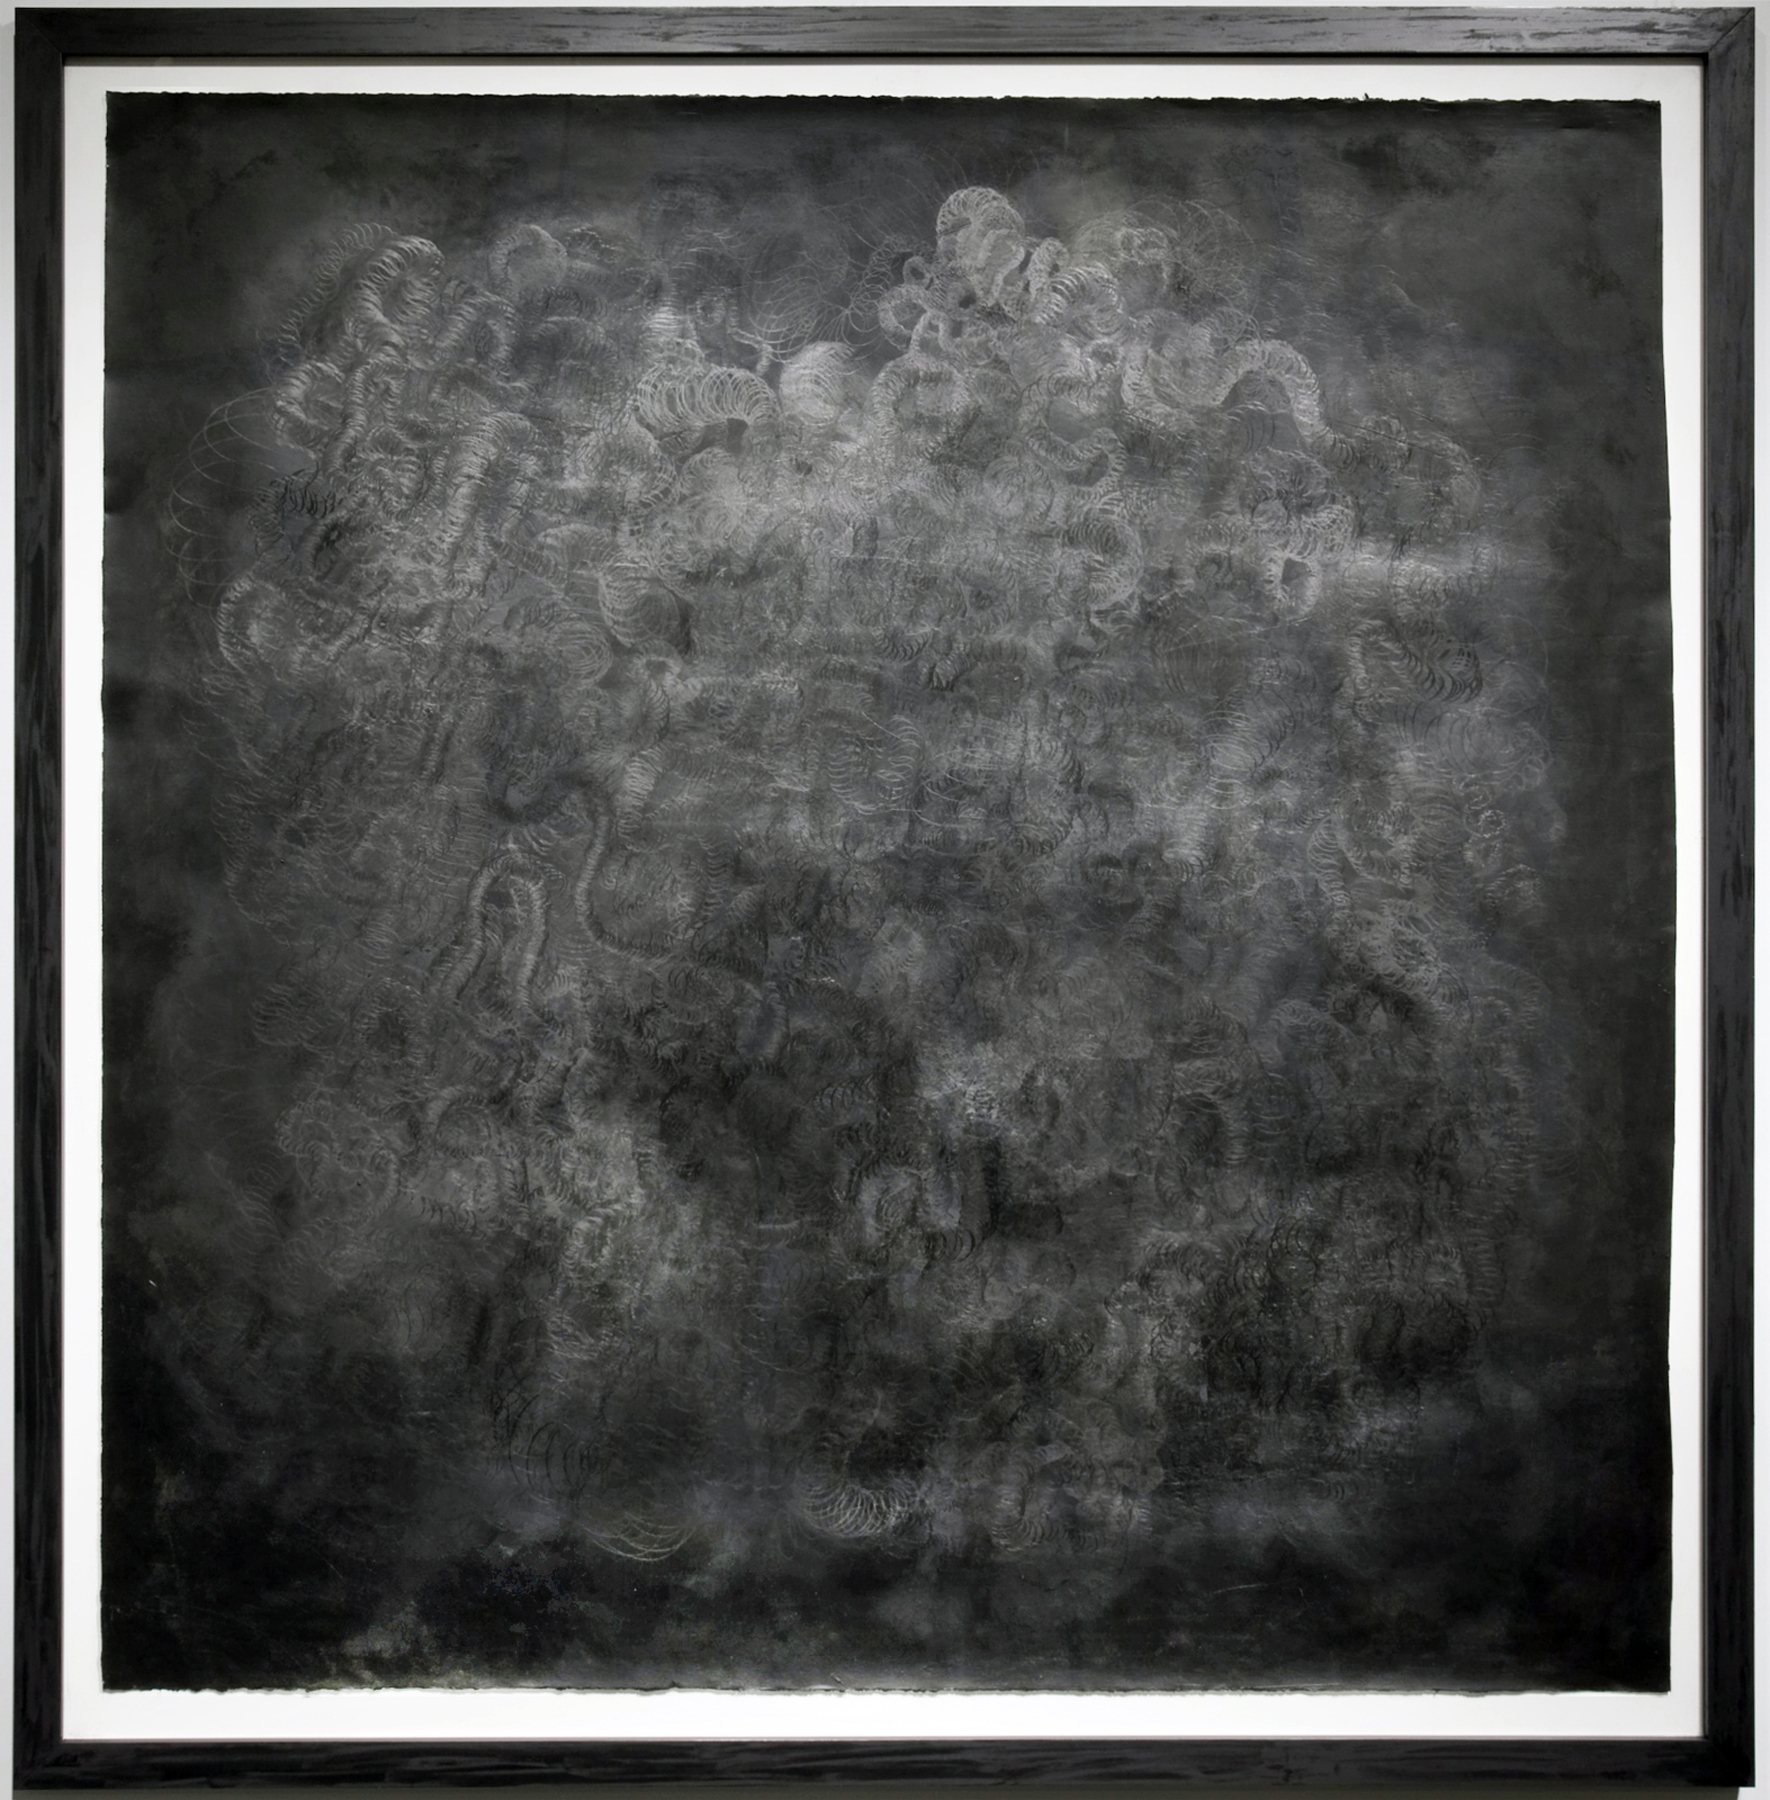 Spatial Apperception , 2010 Soo Sunny Park Shoe polish, paint, graphite on paper  61 x 60 in.  Contact for Price